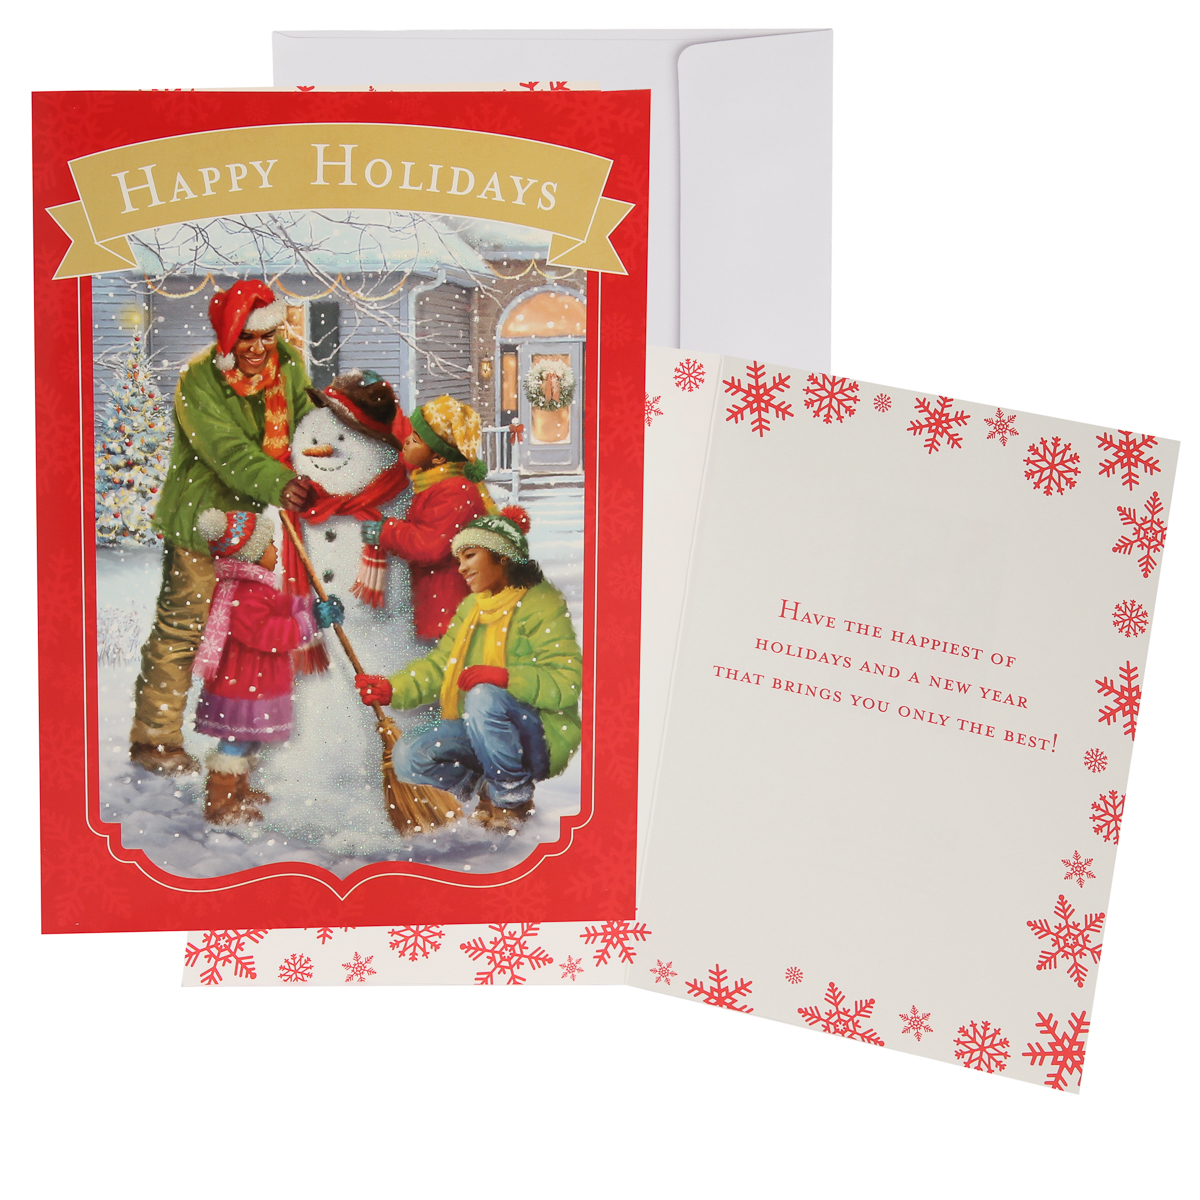 48pk-Merry-Christmas-Cards-Bulk-Assortment-Holiday-Card-Pack-with-Foil-amp-Glitter thumbnail 8